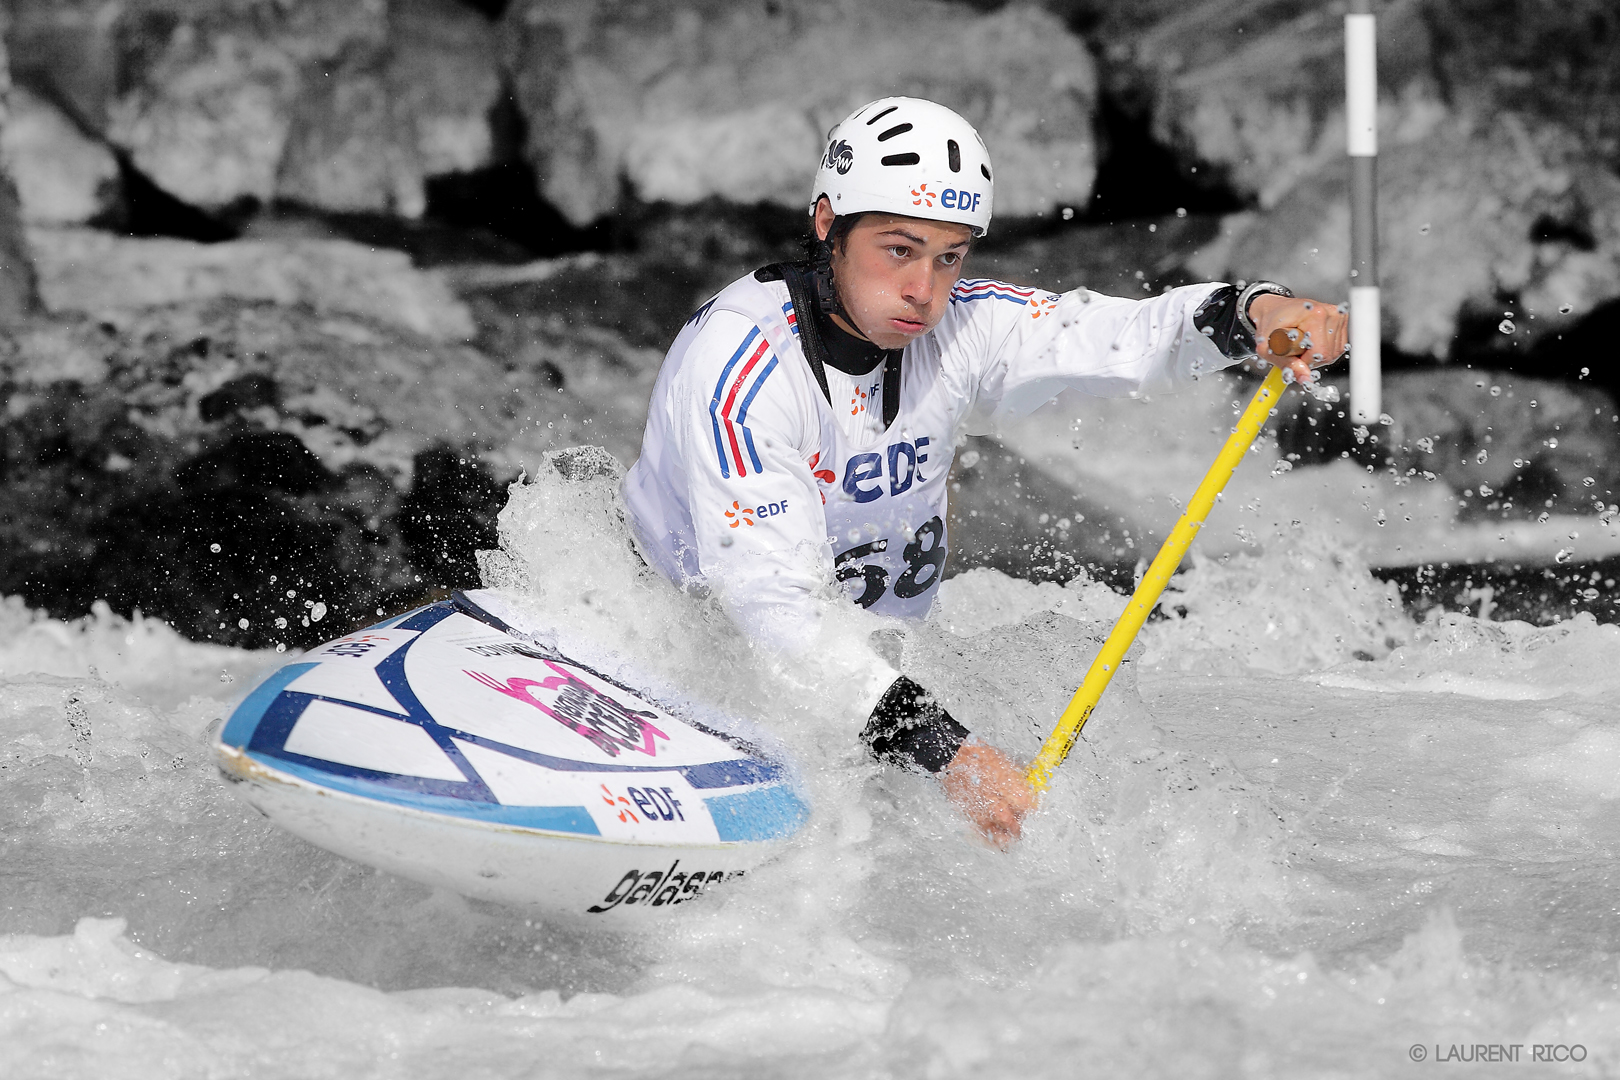 laurent-rico- bourg-saint-maurice-reportage-slalom-photo-championnats-competition-bassin-international-riviere